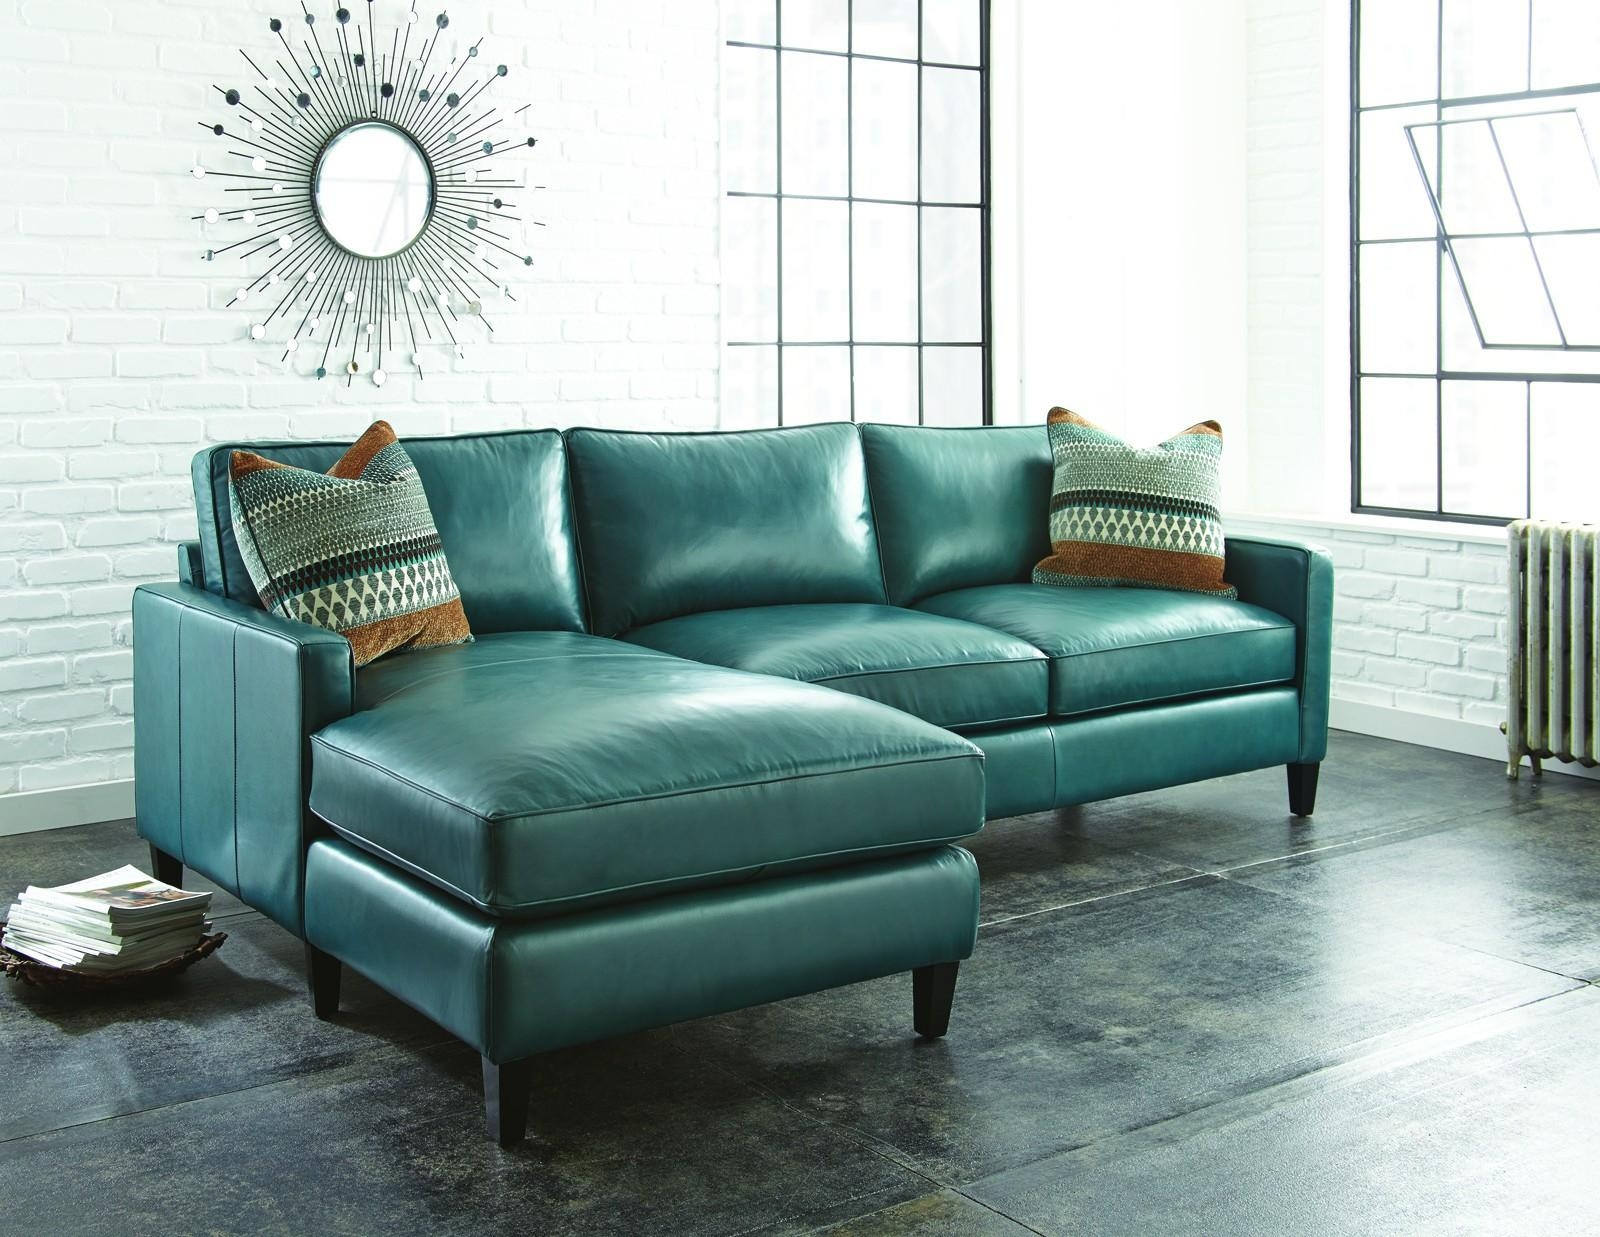 12 Green Leather Sectional Sofa | Carehouse throughout Media Sofa Sectionals